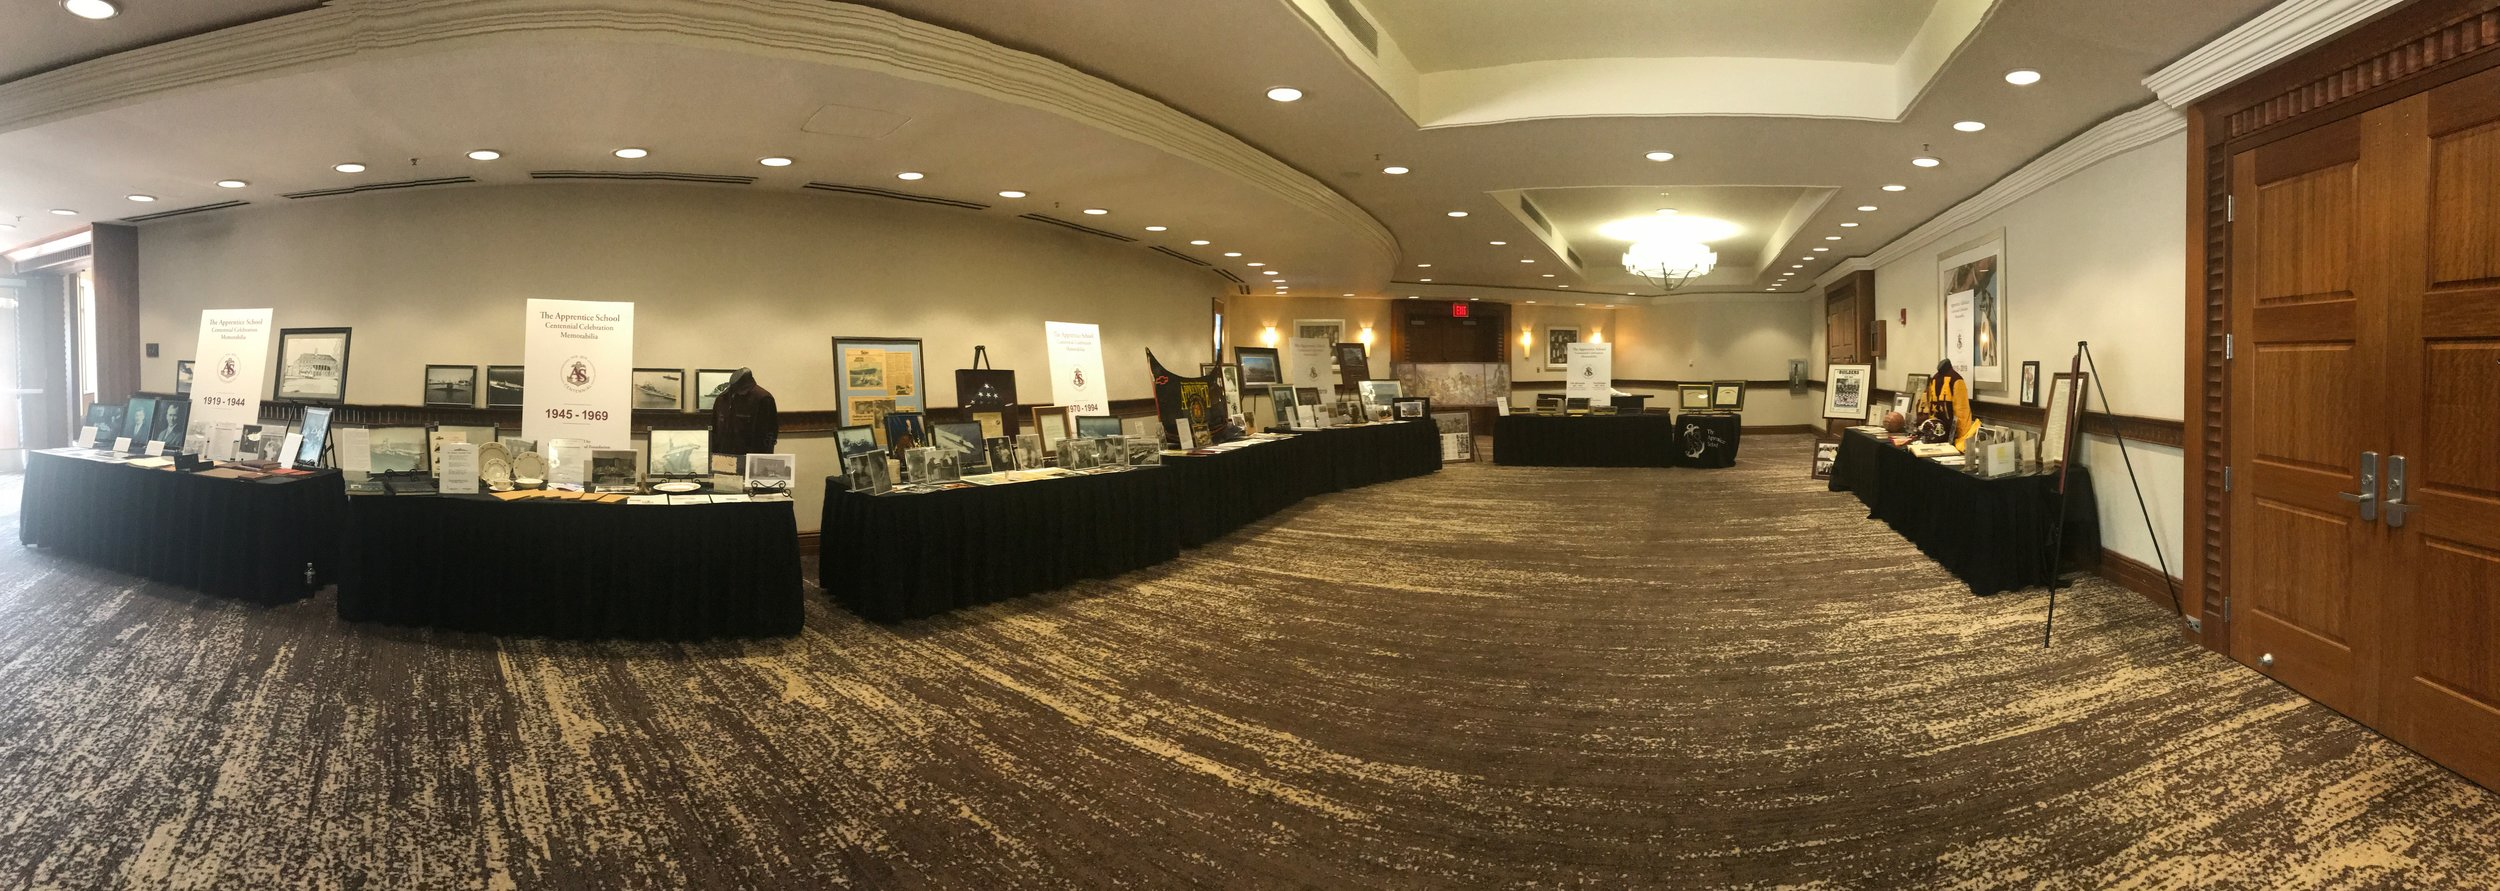 Centennial Gala Event - Memorabilia Display